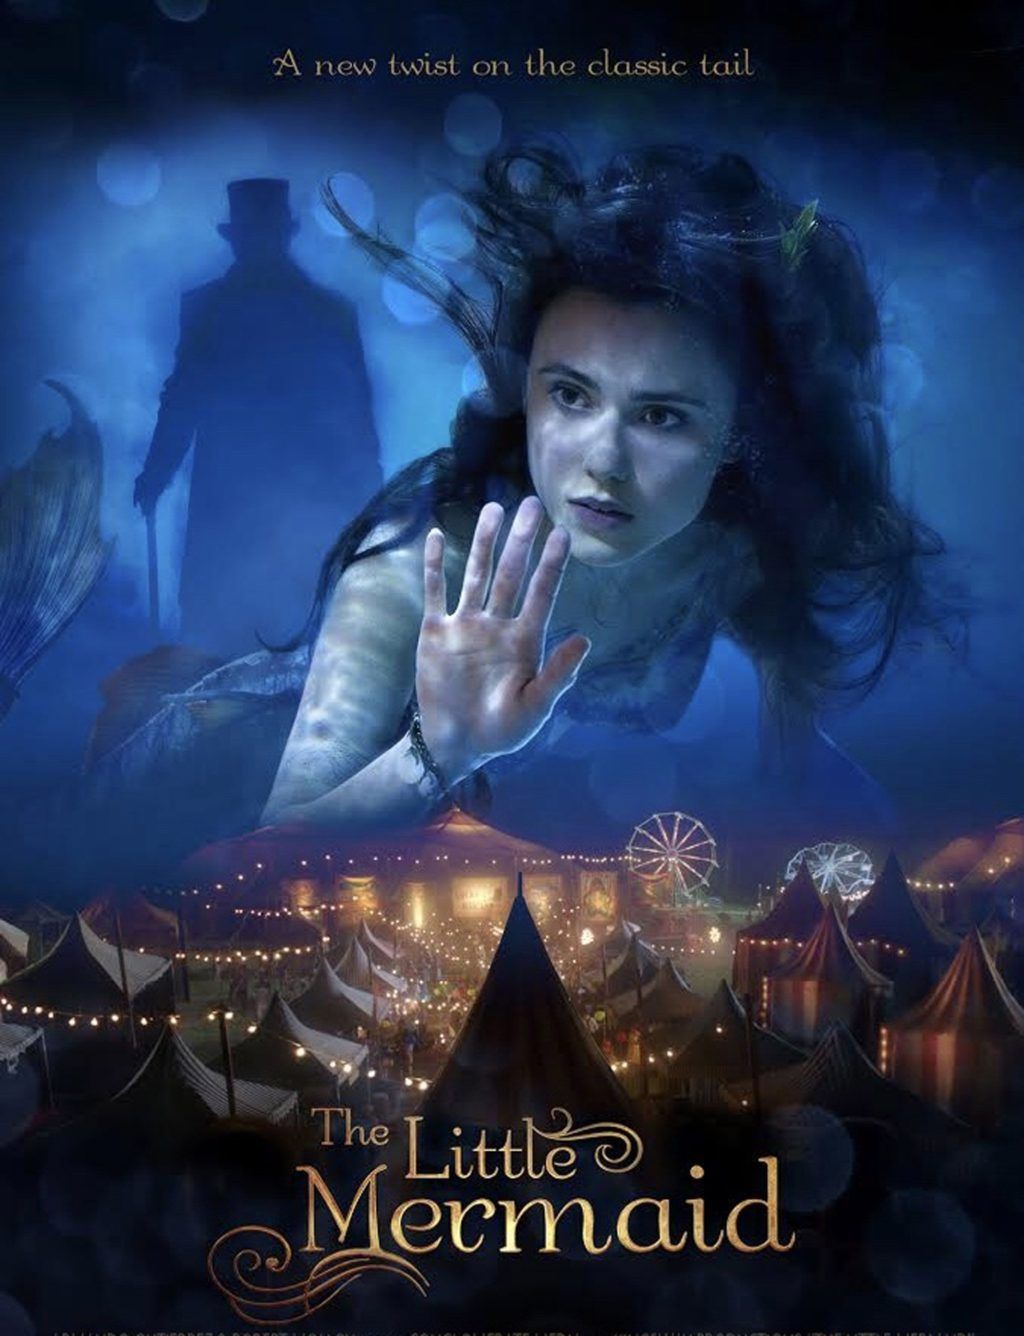 Pin By Sonitta On Movies I Watched Little Mermaid Movies Little Mermaid Full Movie Mermaid Movies